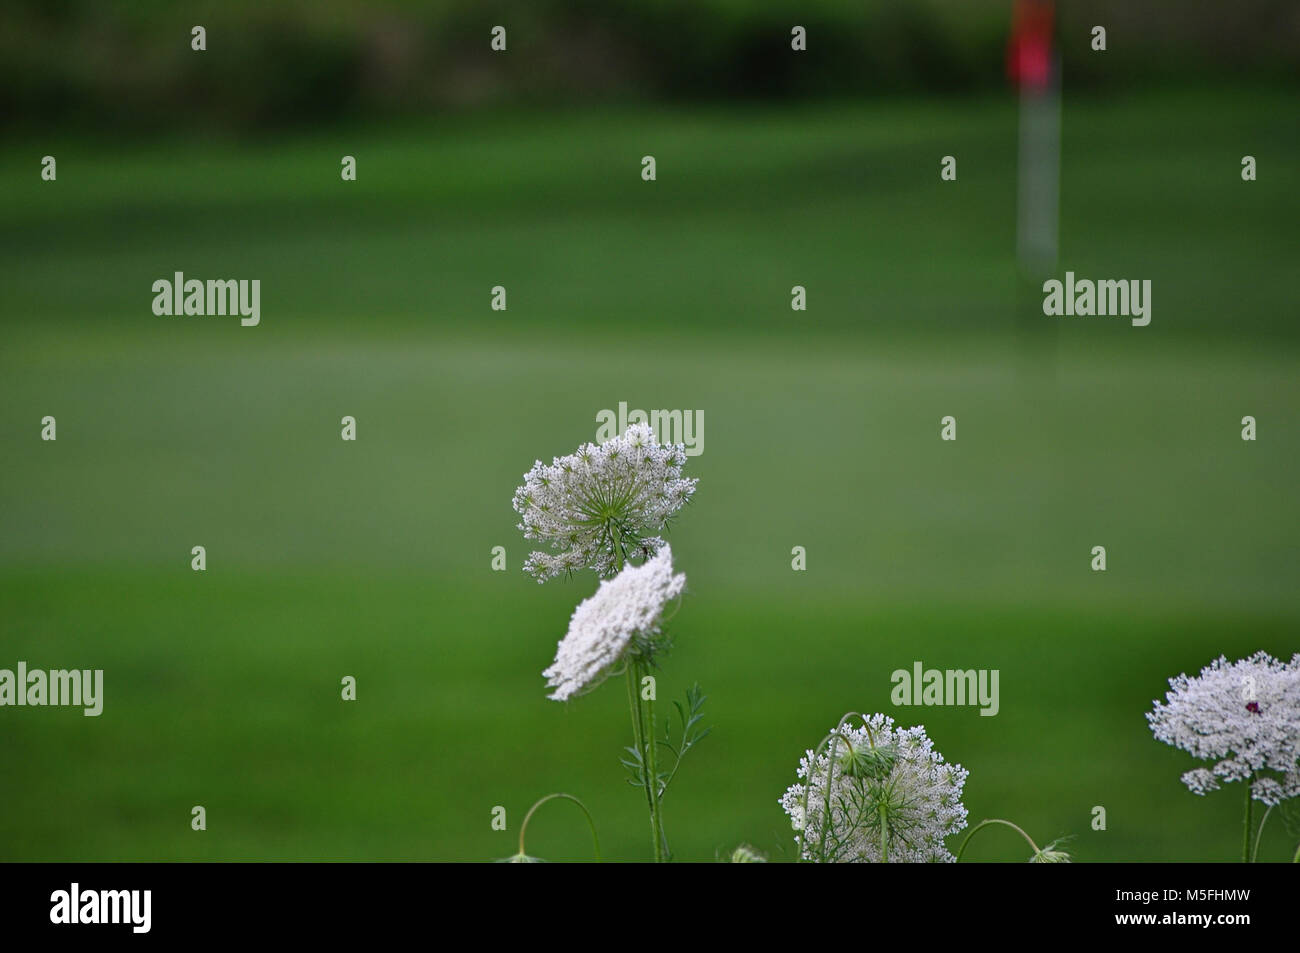 White Flowers Near Golf Green With Red Flag On Golf Pole Stock Photo